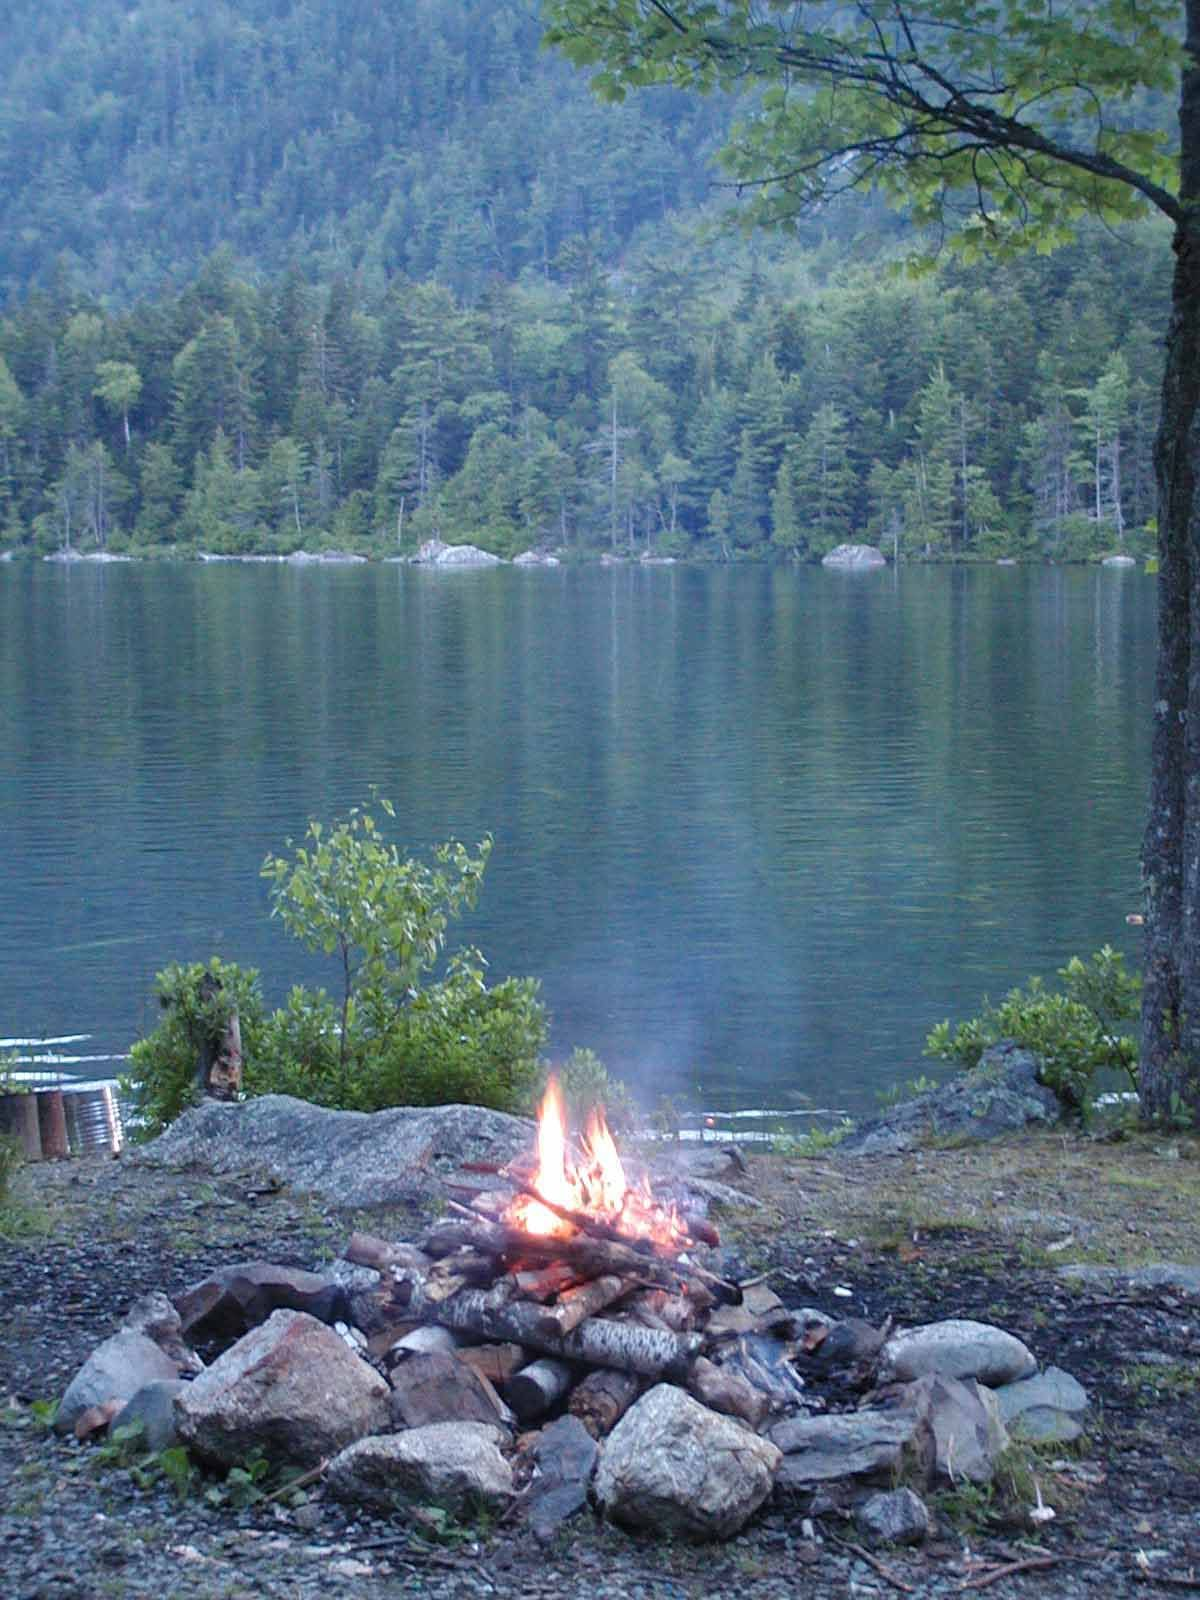 Nothing like gathering with friends around a camp fire at